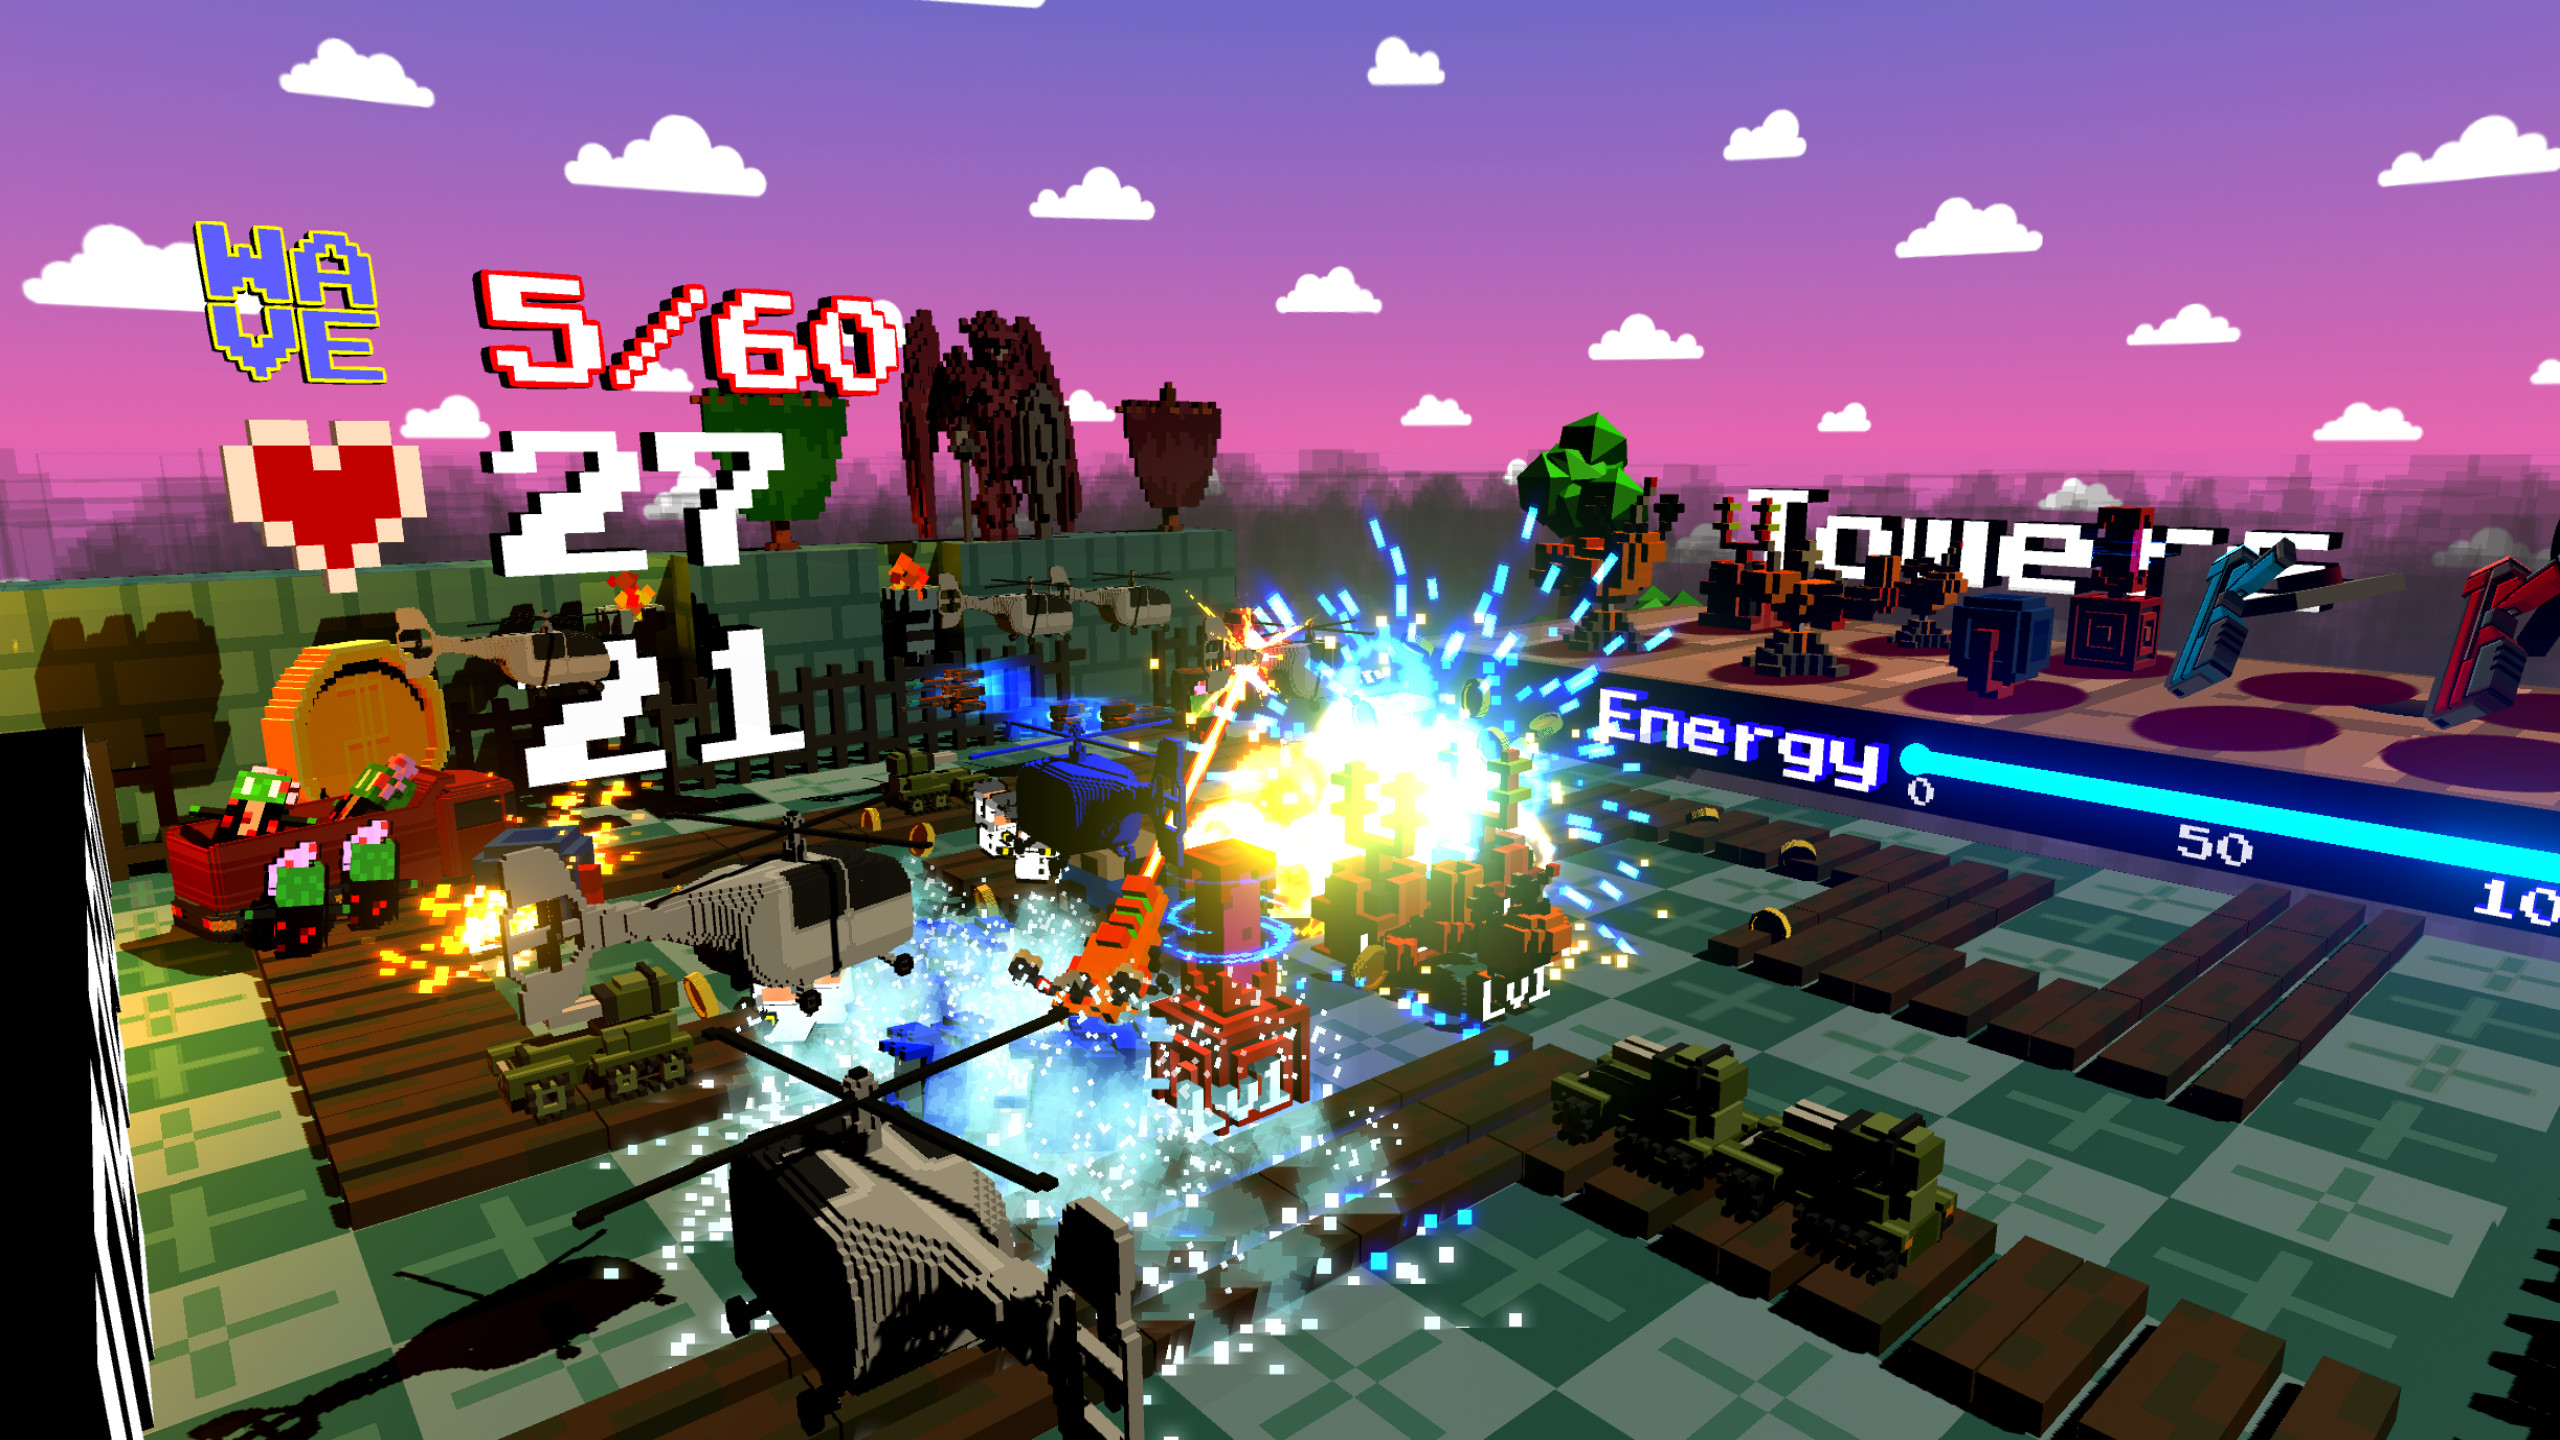 Whats on steam miniature td vr are you ready to play a adorable tower defense game set in an voxel world use the vr controllers to drag and drop towers on a floating map gumiabroncs Gallery